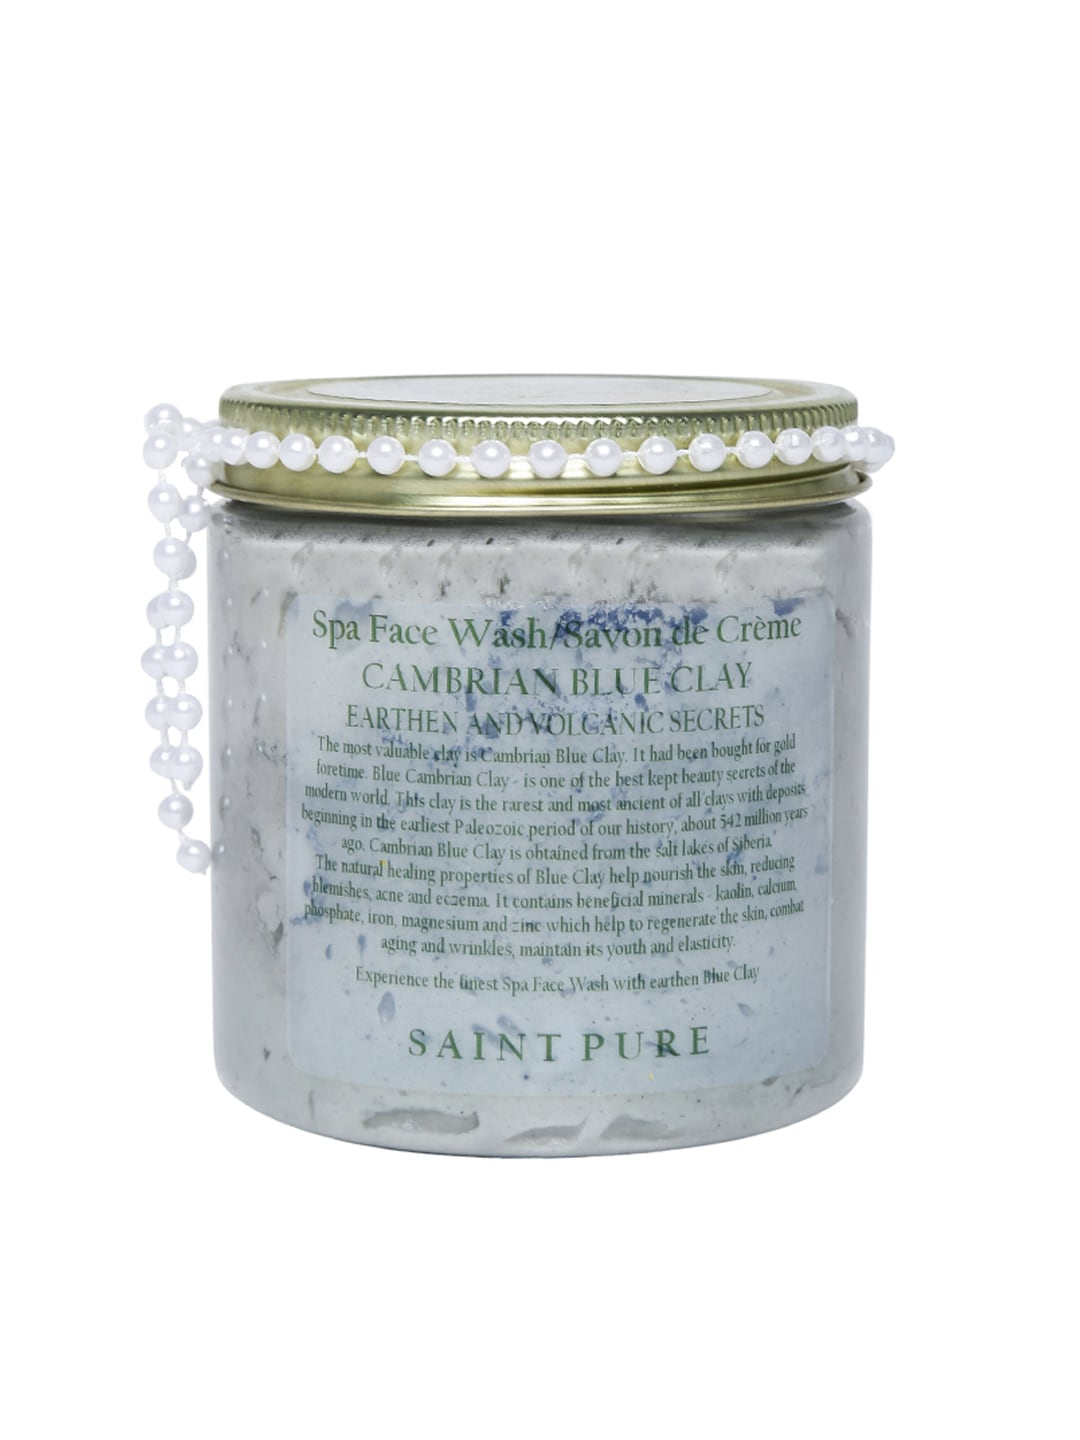 SAINT PURE Unisex Cambrian Blue Clay Spa Face Wash